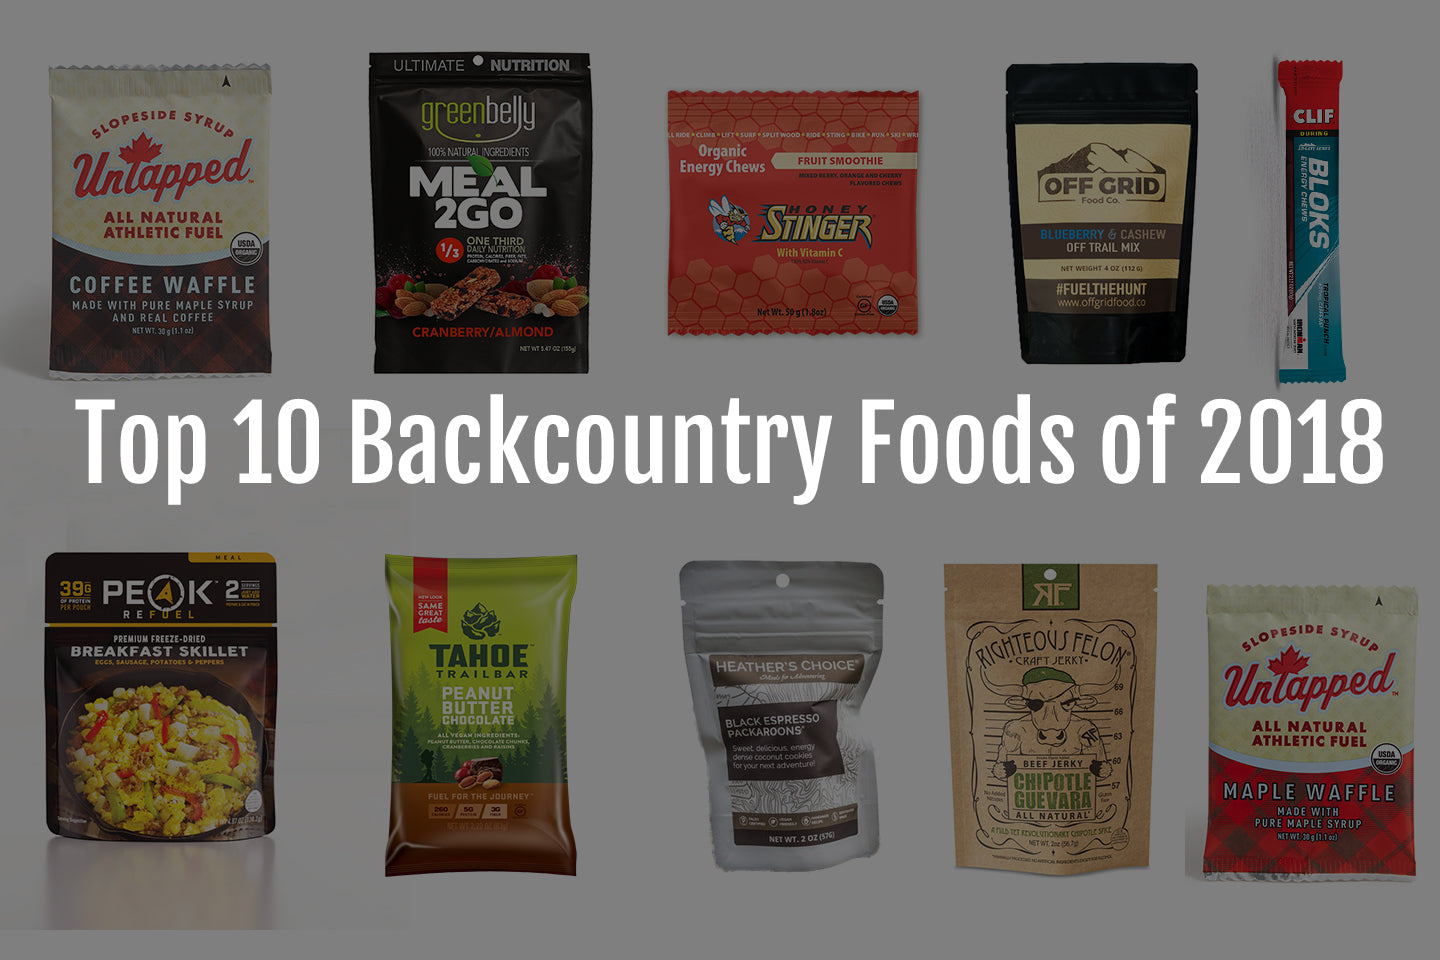 Top 10 Backcountry Foods of 2018